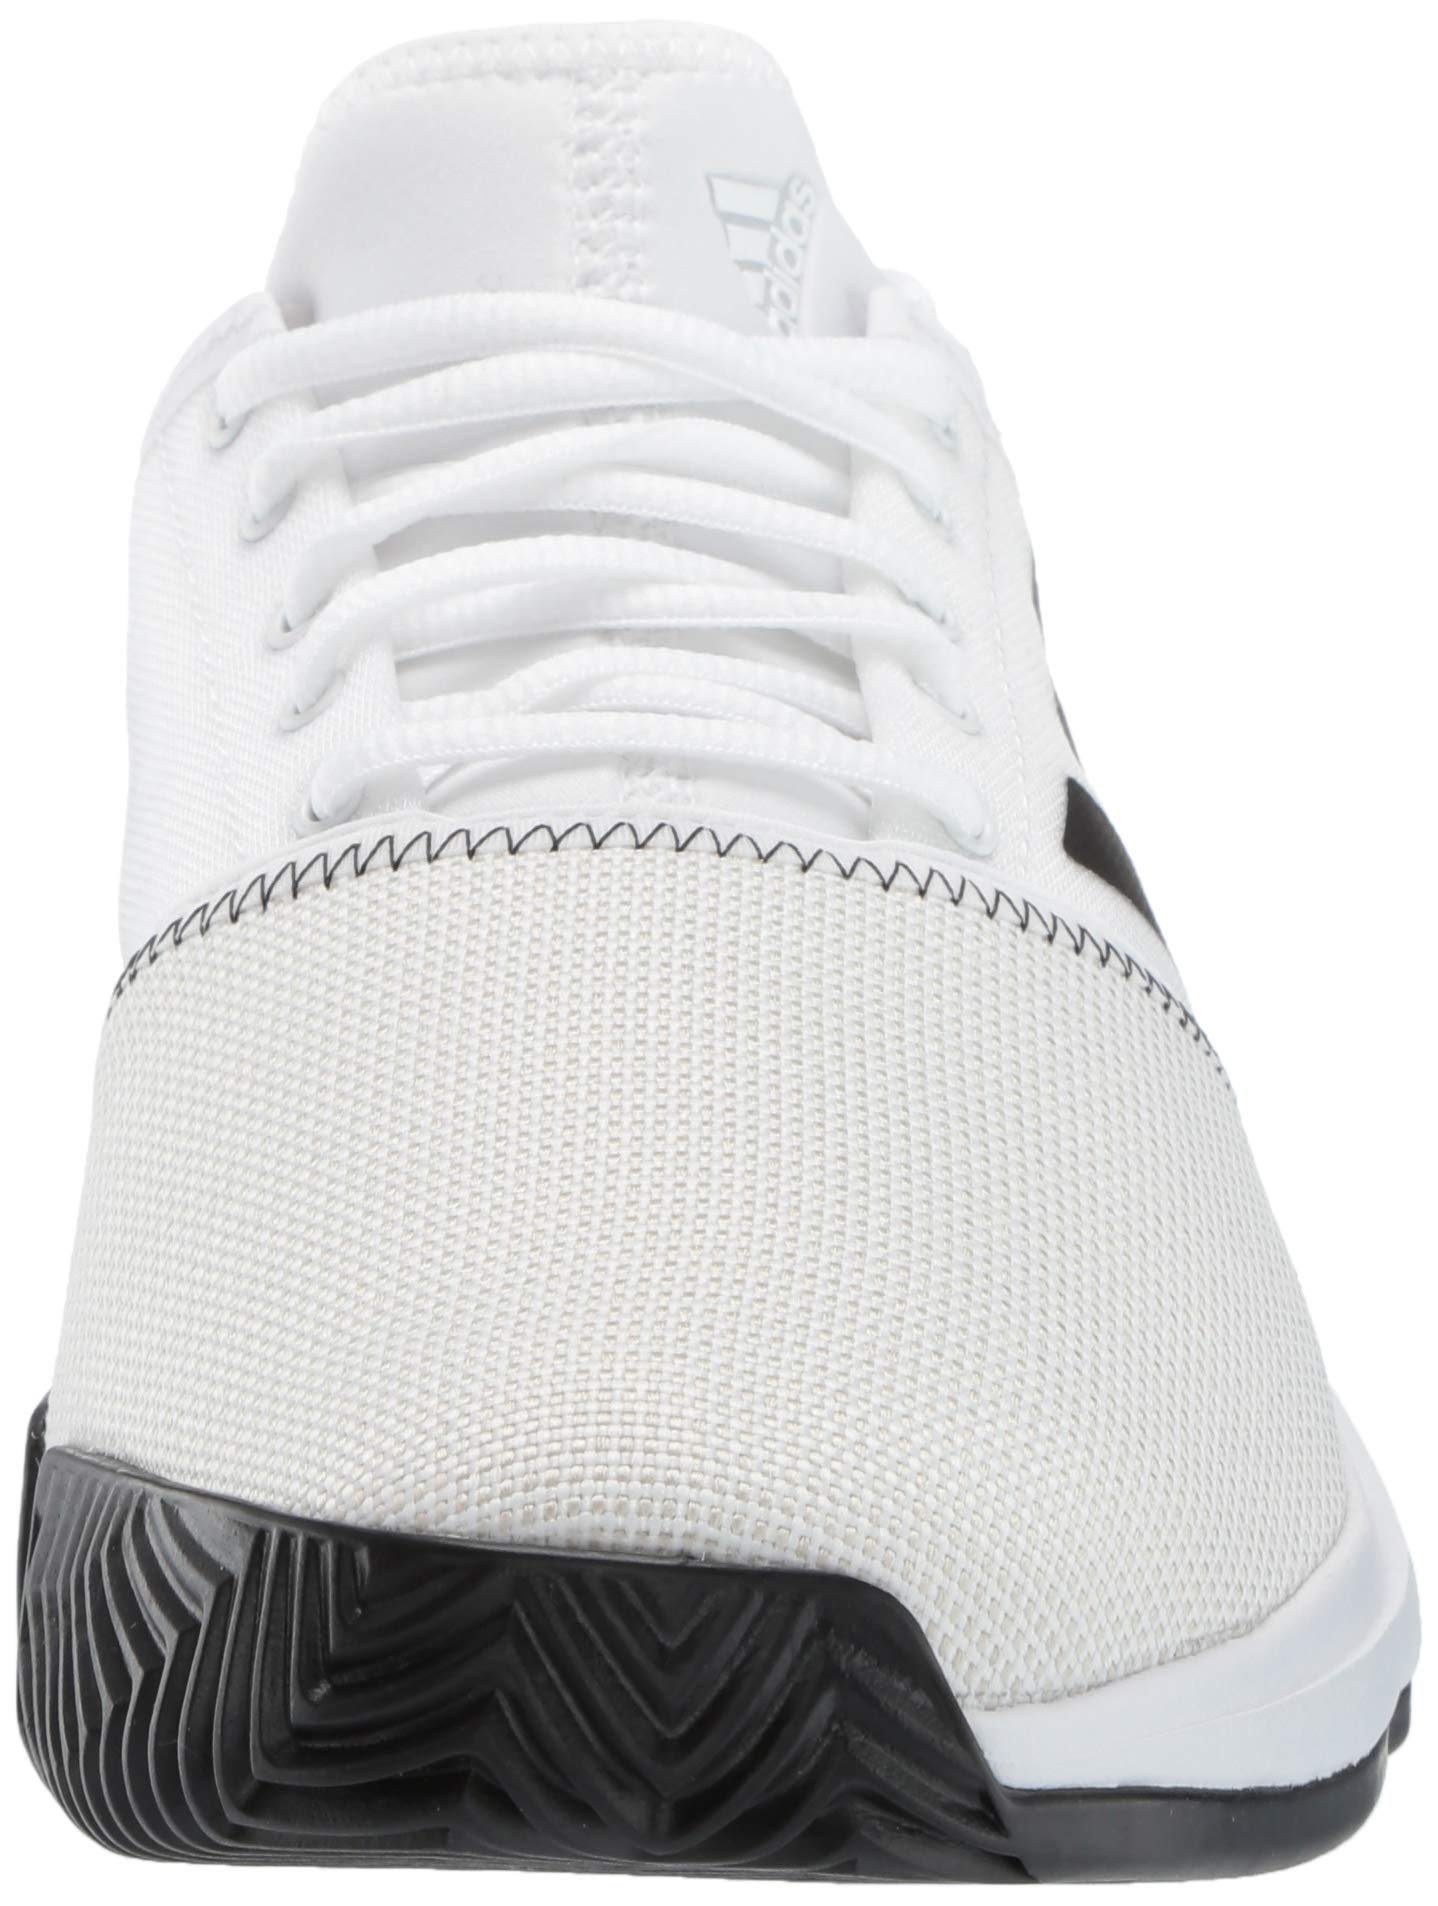 adidas Men's Gamecourt, White/Black/Grey 6.5 M US by adidas (Image #4)